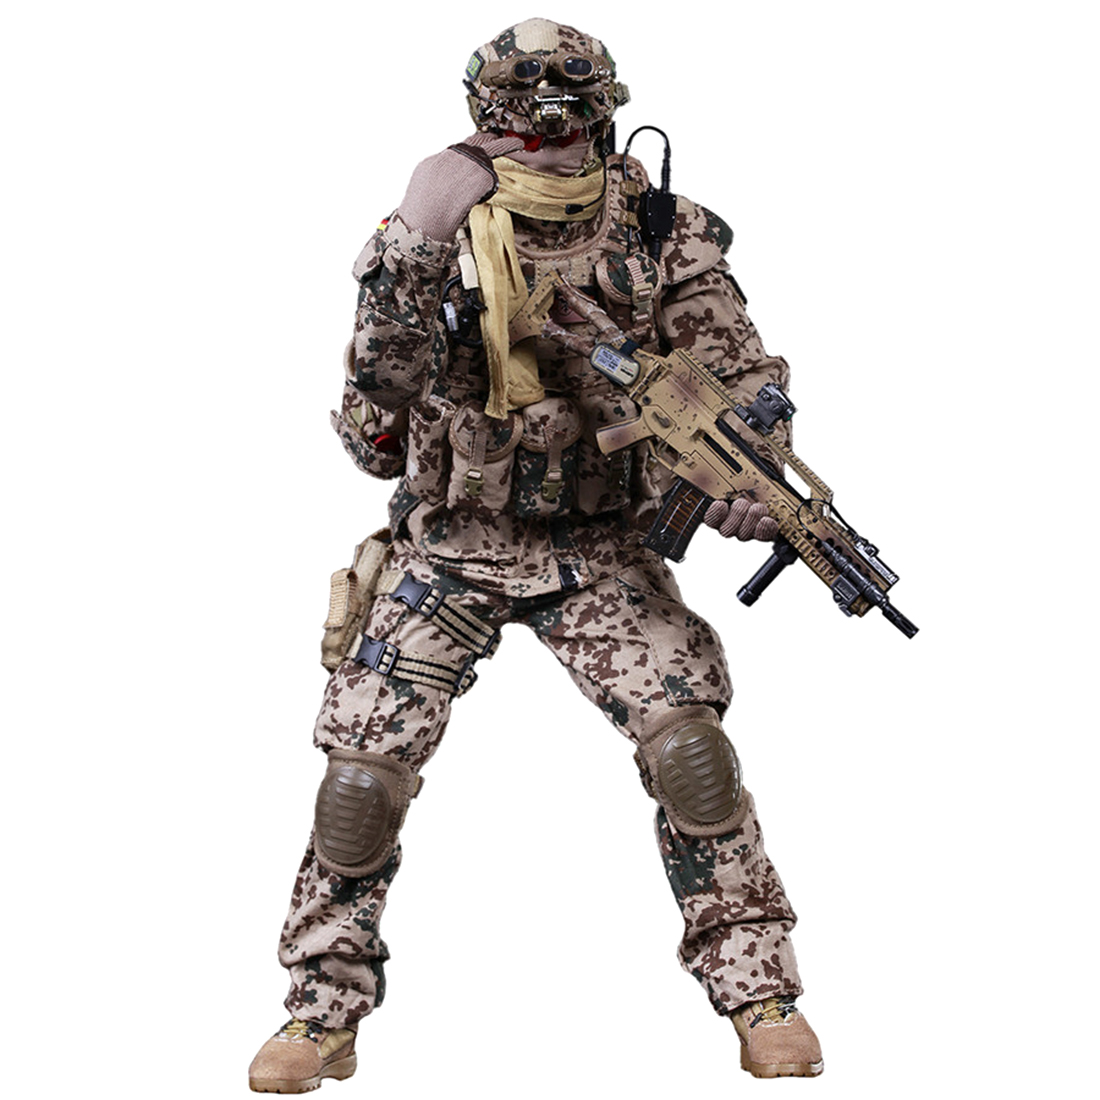 NFSTRIKE 30cm 1 6 Movable Germany KSK Afghanistan Special Operations Group Figure Military Soldier Model 2019